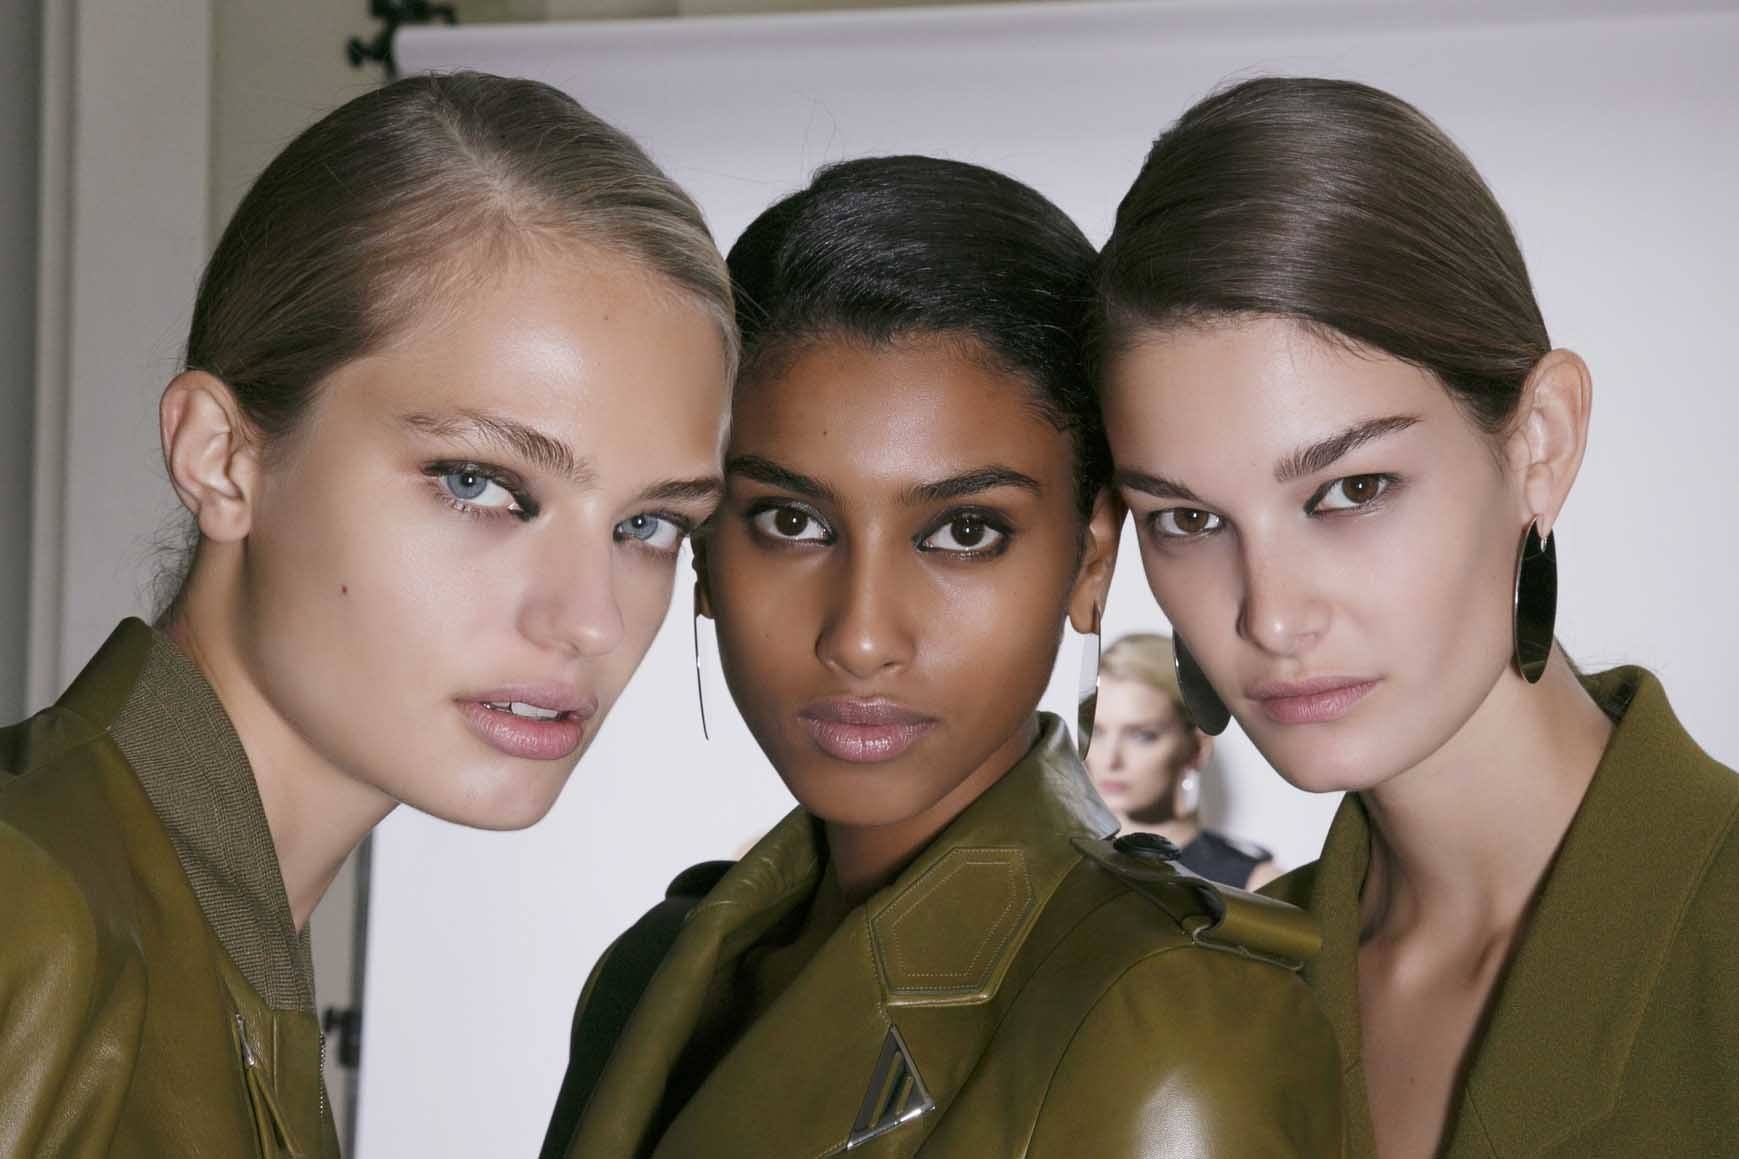 keratin hair treatment Q&A: close up shot of three models with sleek, smooth hair, wearing all green and posing backstage at a fashion show